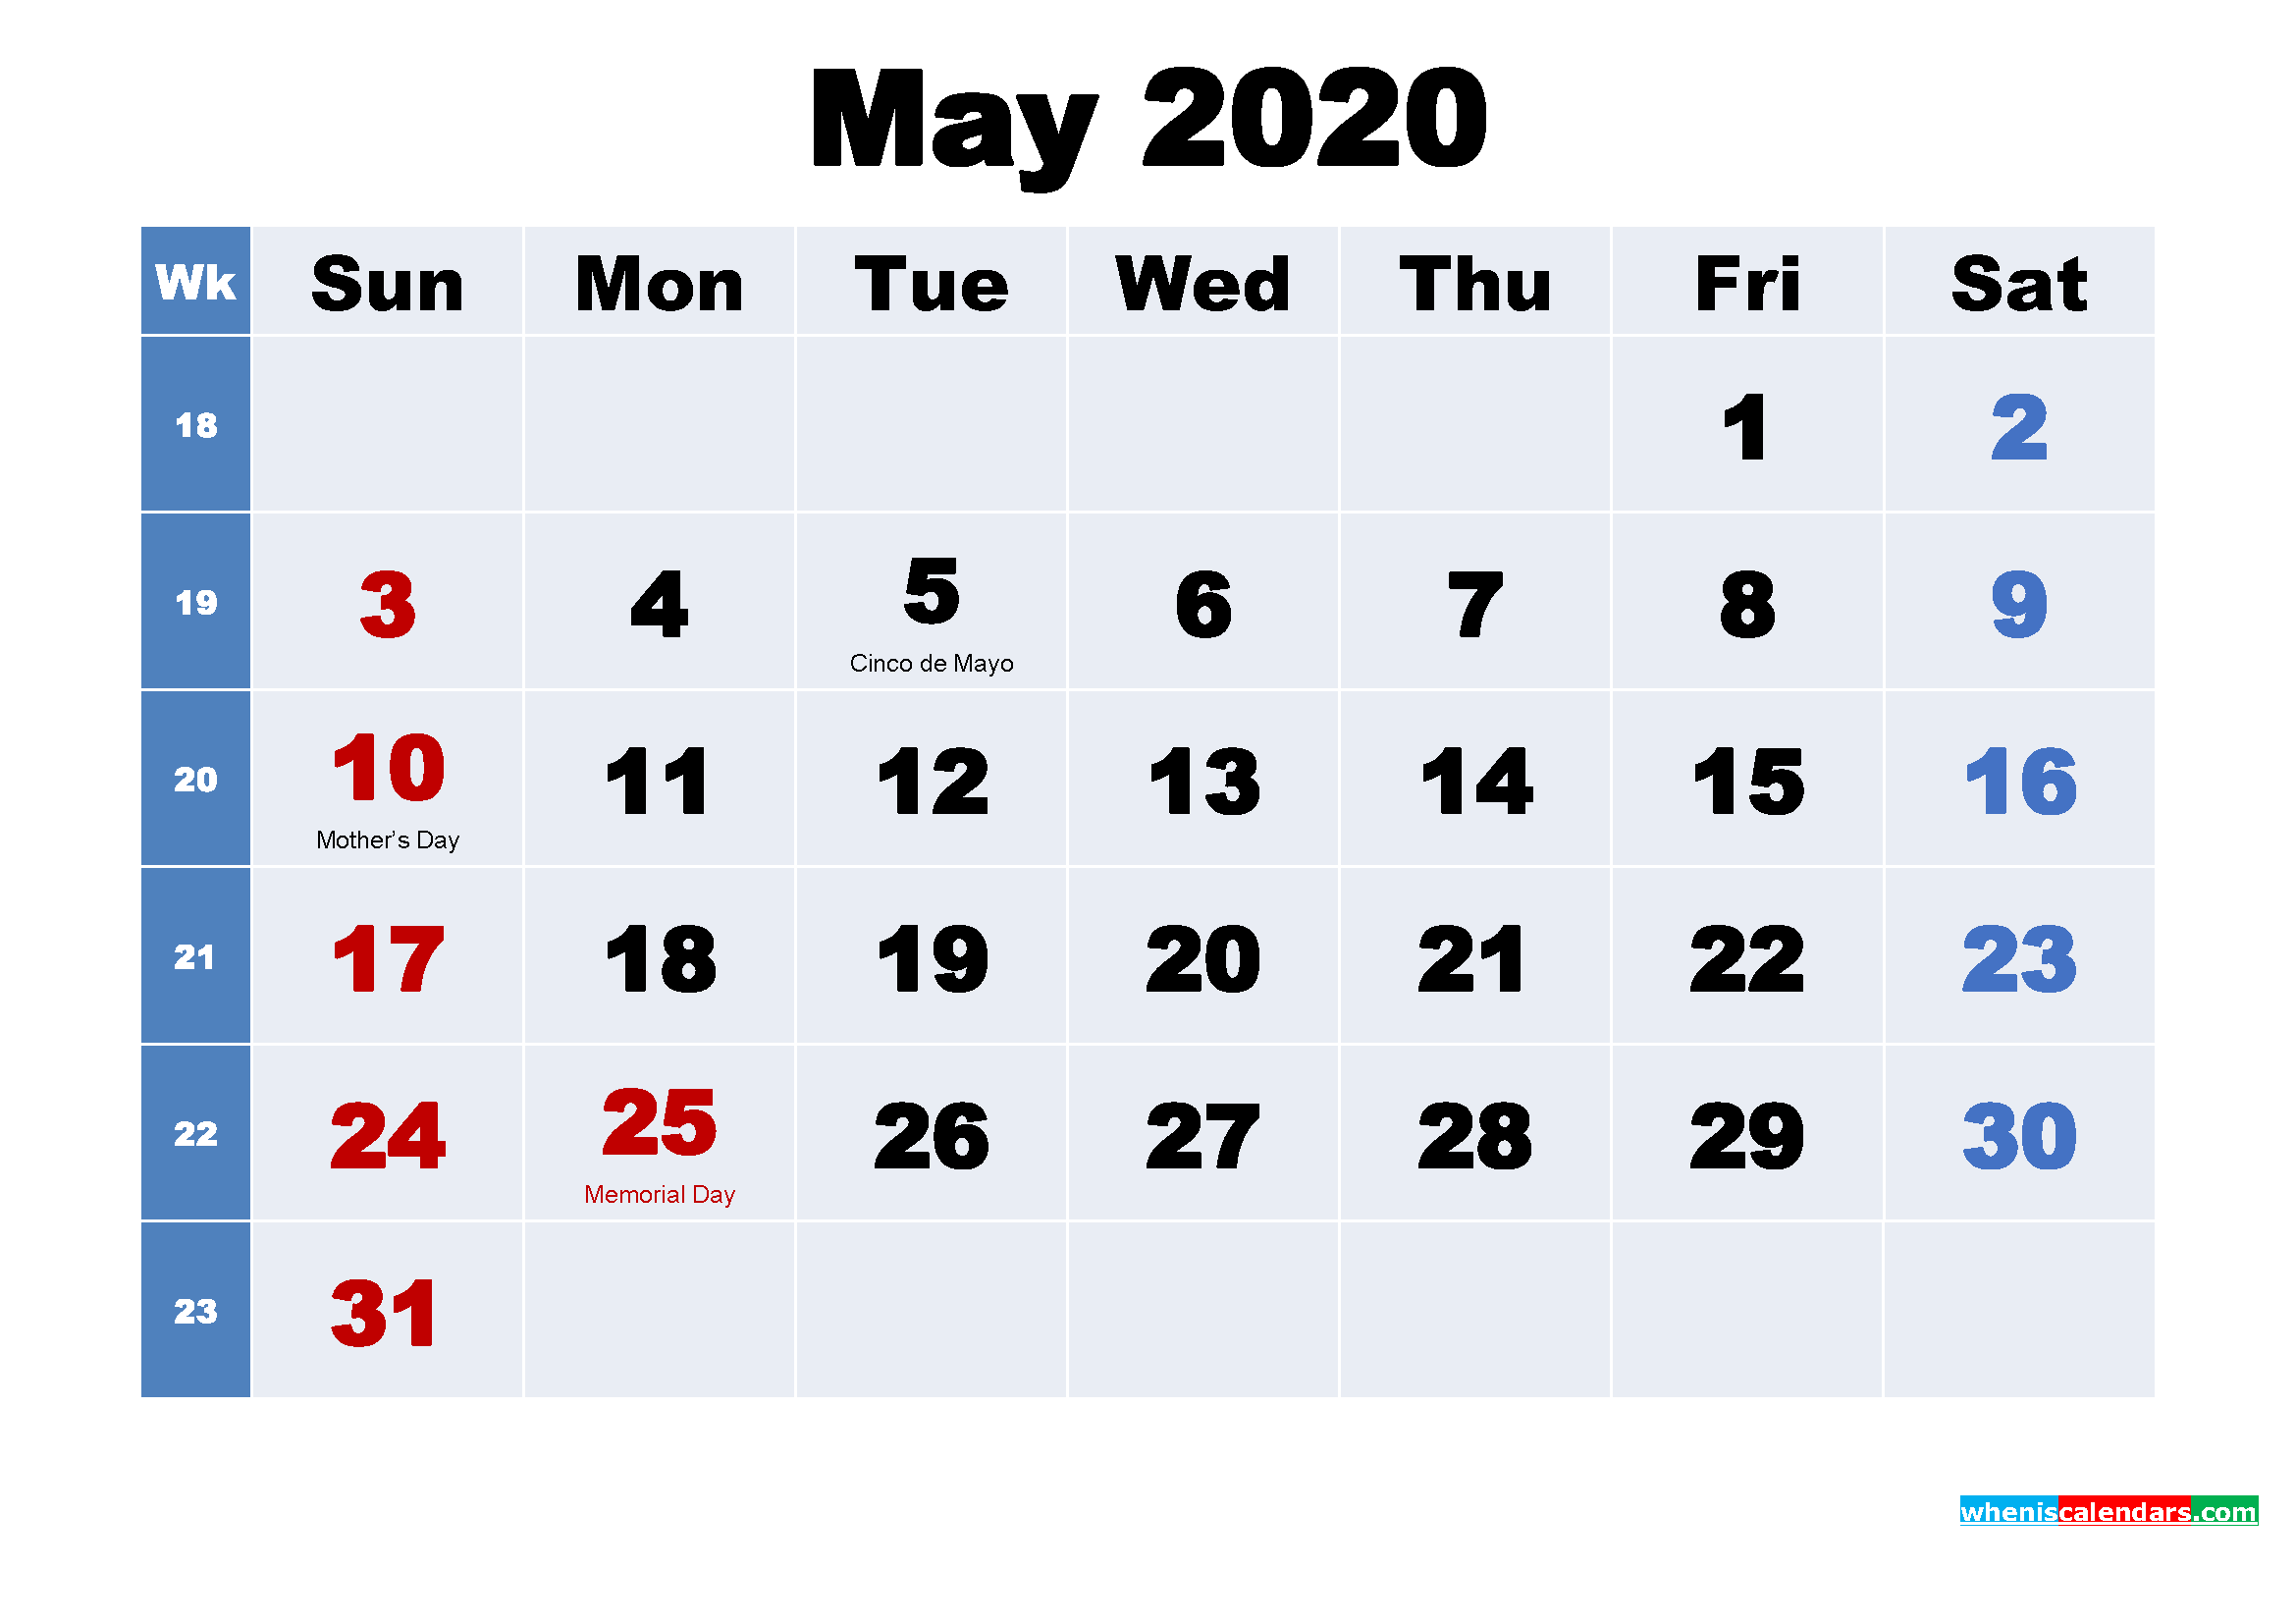 May 2020 Desktop Calendar with Holidays